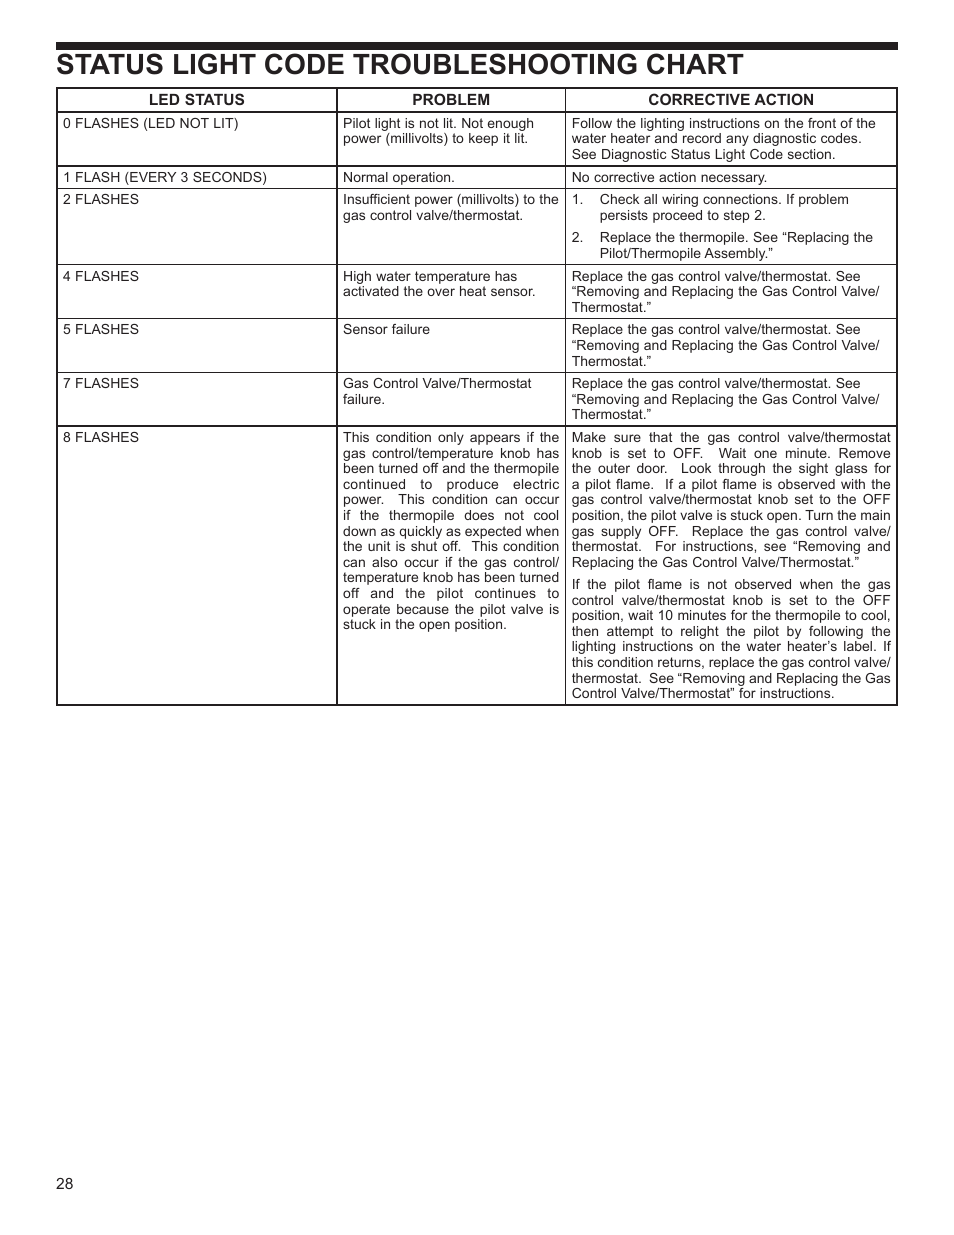 Status Light Code, Status Light Code Troubleshooting Chart | Whirlpool  Residential Gas Water Heater With The Flame Lock Safety System User Manual  | Page 28 ...